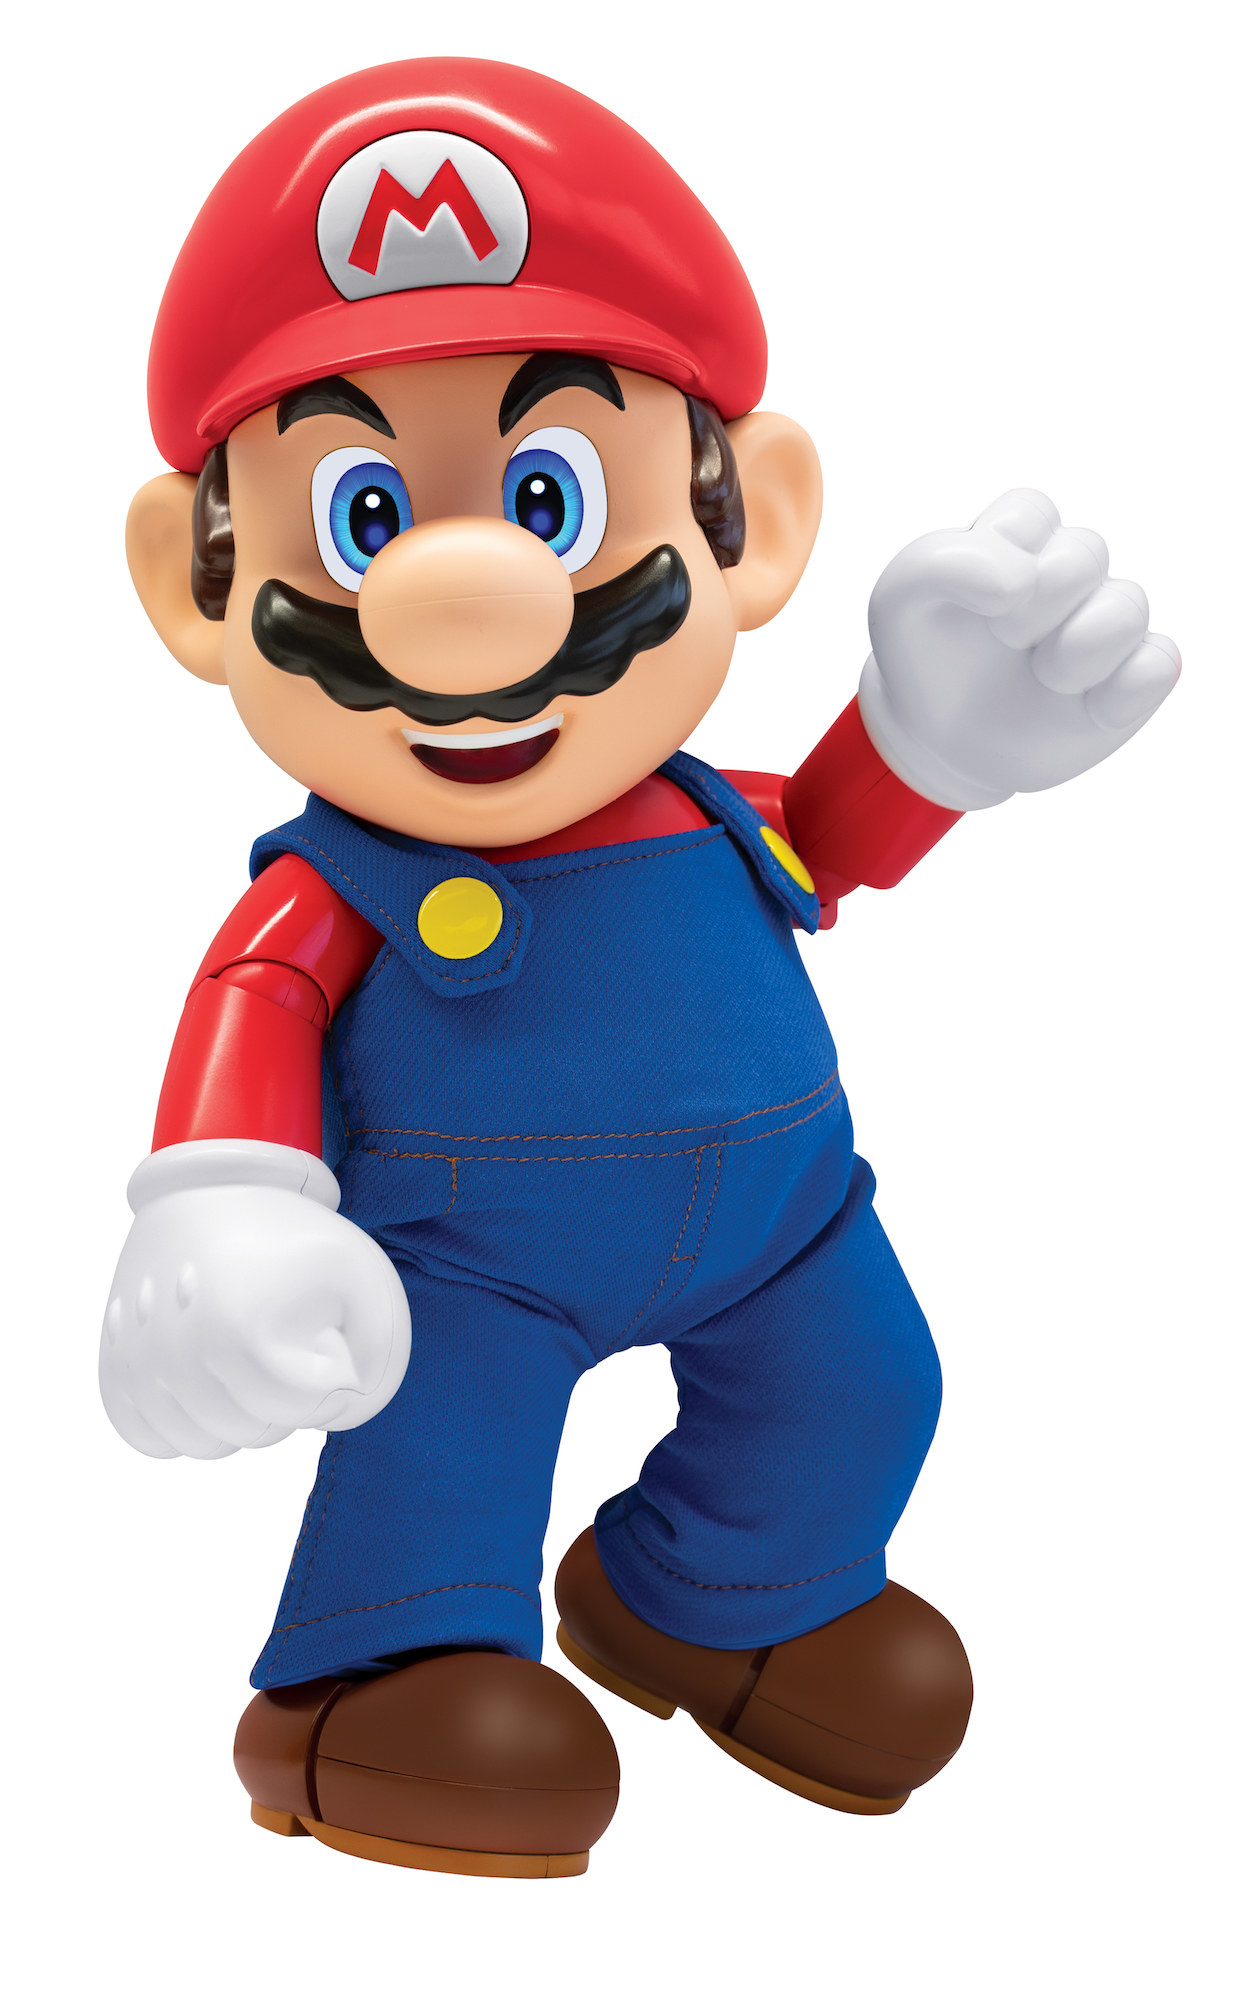 super mario figure posing like he's about to jump